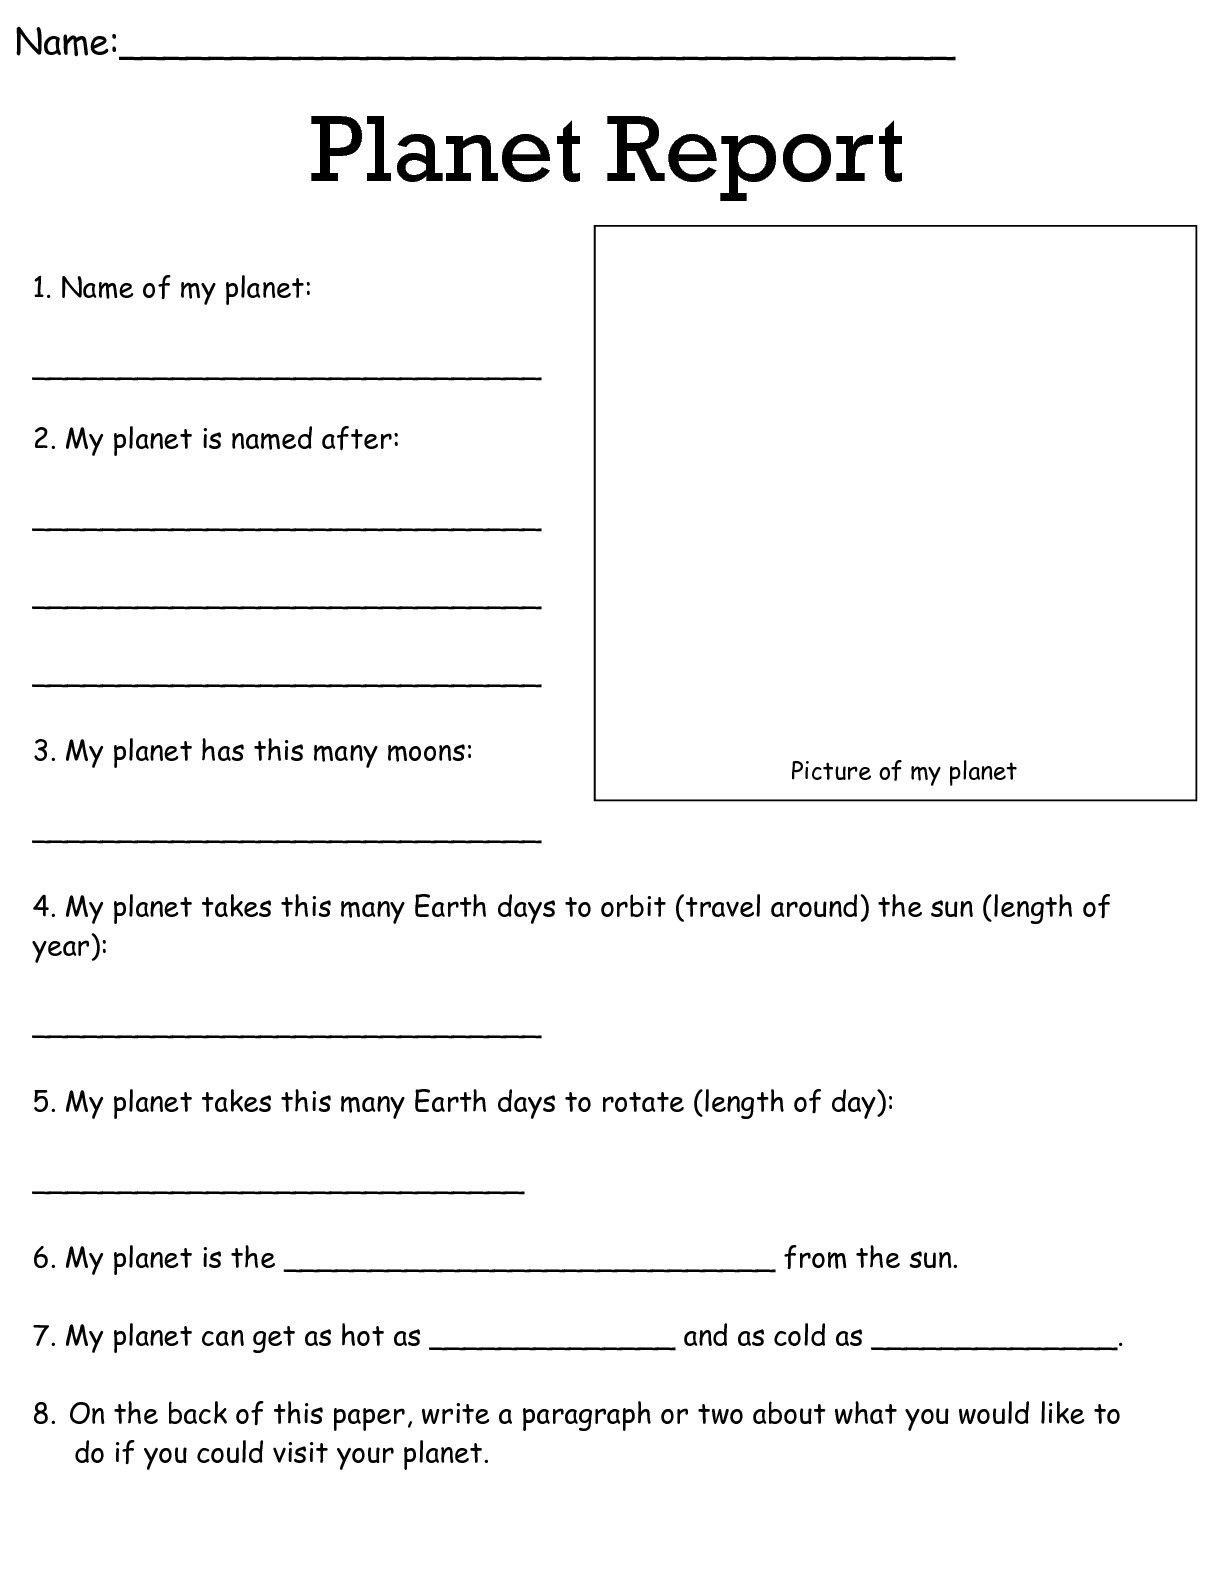 Science Worksheets for 5th Grade 5th Grade Science Worksheets with Answer Key